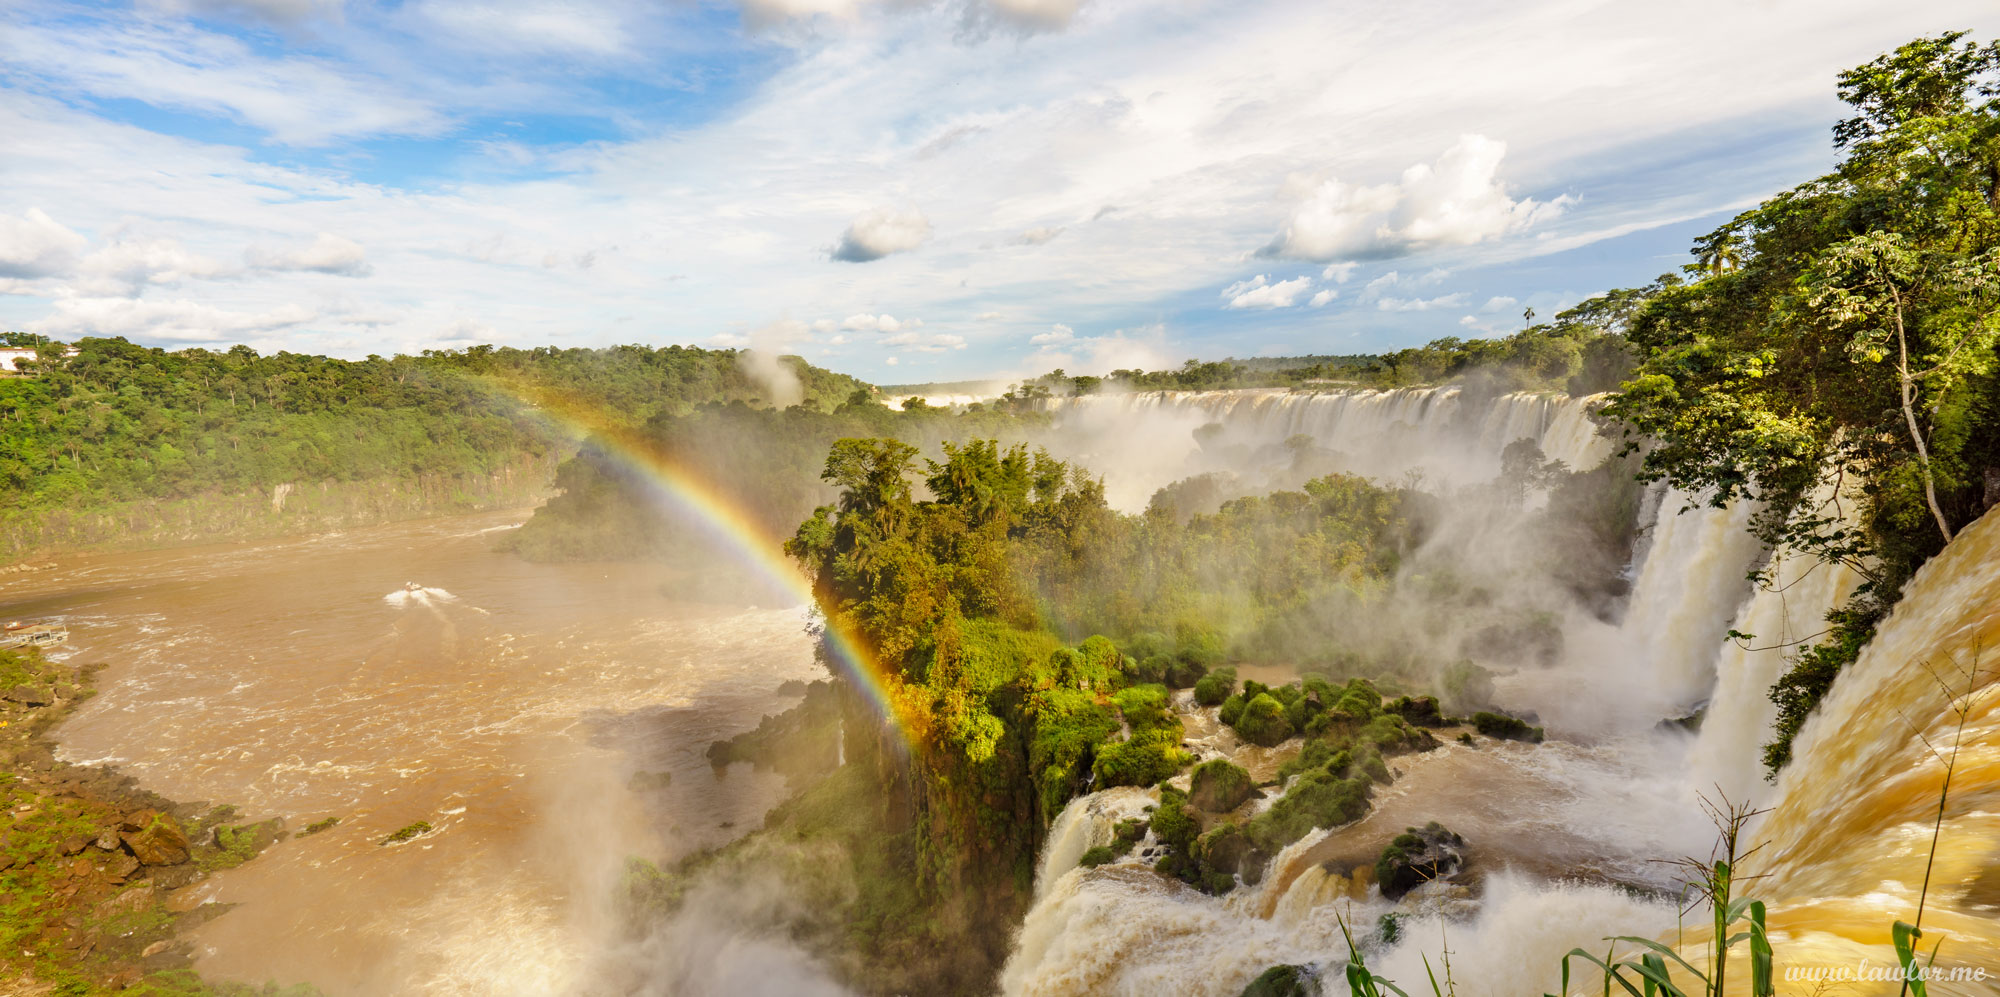 Free Landscape Photography, free landscape photos, free nature images, free HD images, free high definition stock images, free stock images download, desktop background, desktop wallpapers, free screensaver, landscape photography, lawlor's landscape's, steve Lawlor photography, Iguazu falls argentina, Iguassu, rainbow